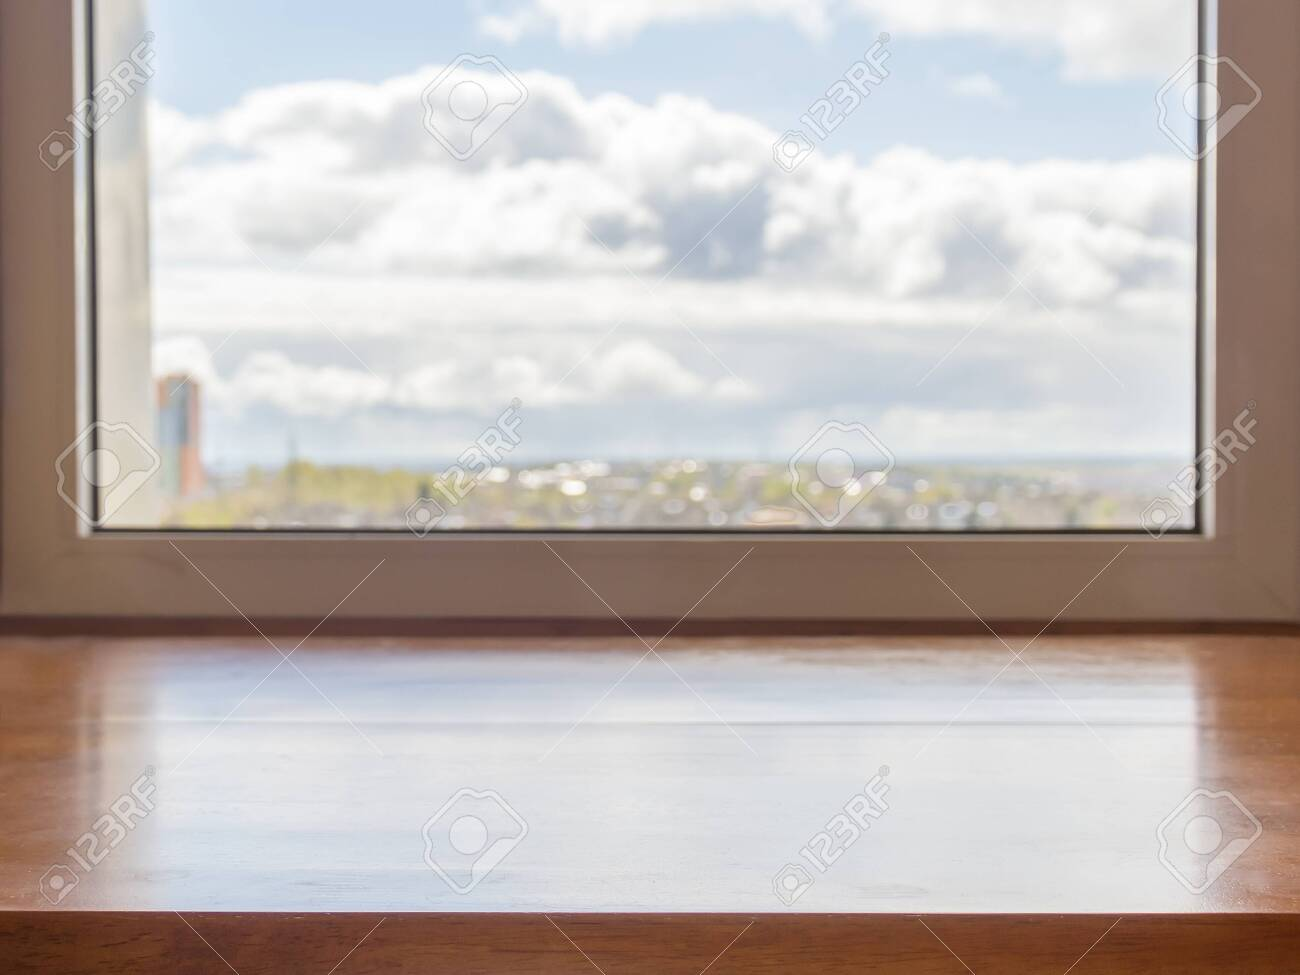 Window with a wooden window sill and landscape in it - 144232386